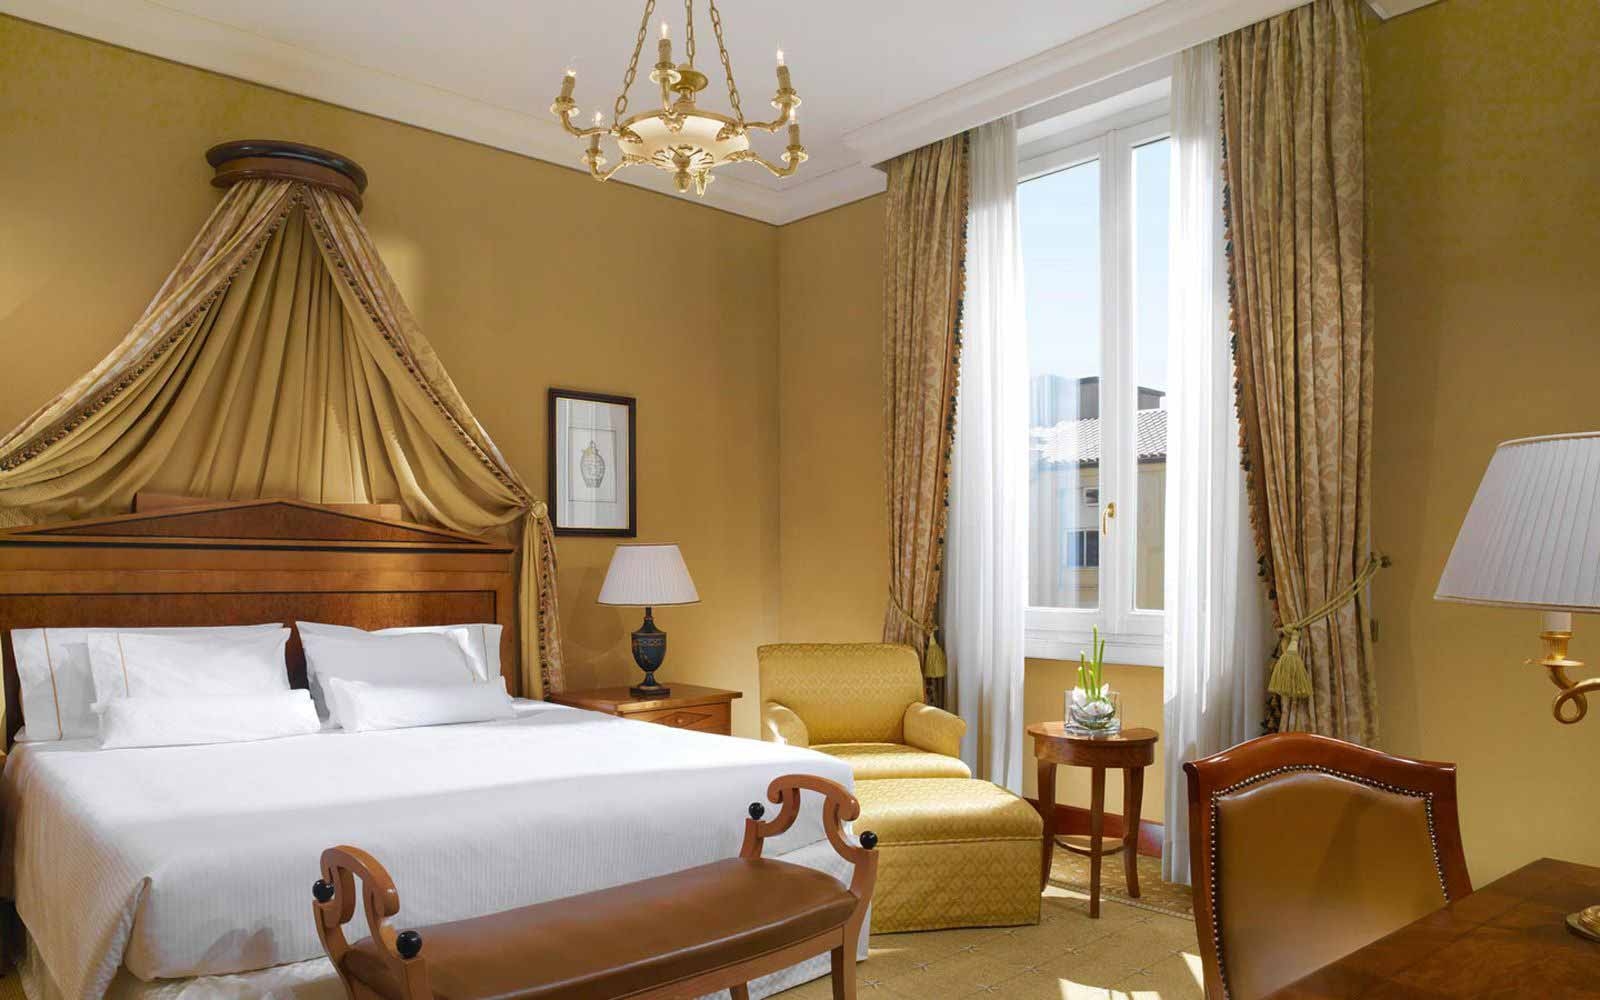 Deluxe room at The Westin Excelsior